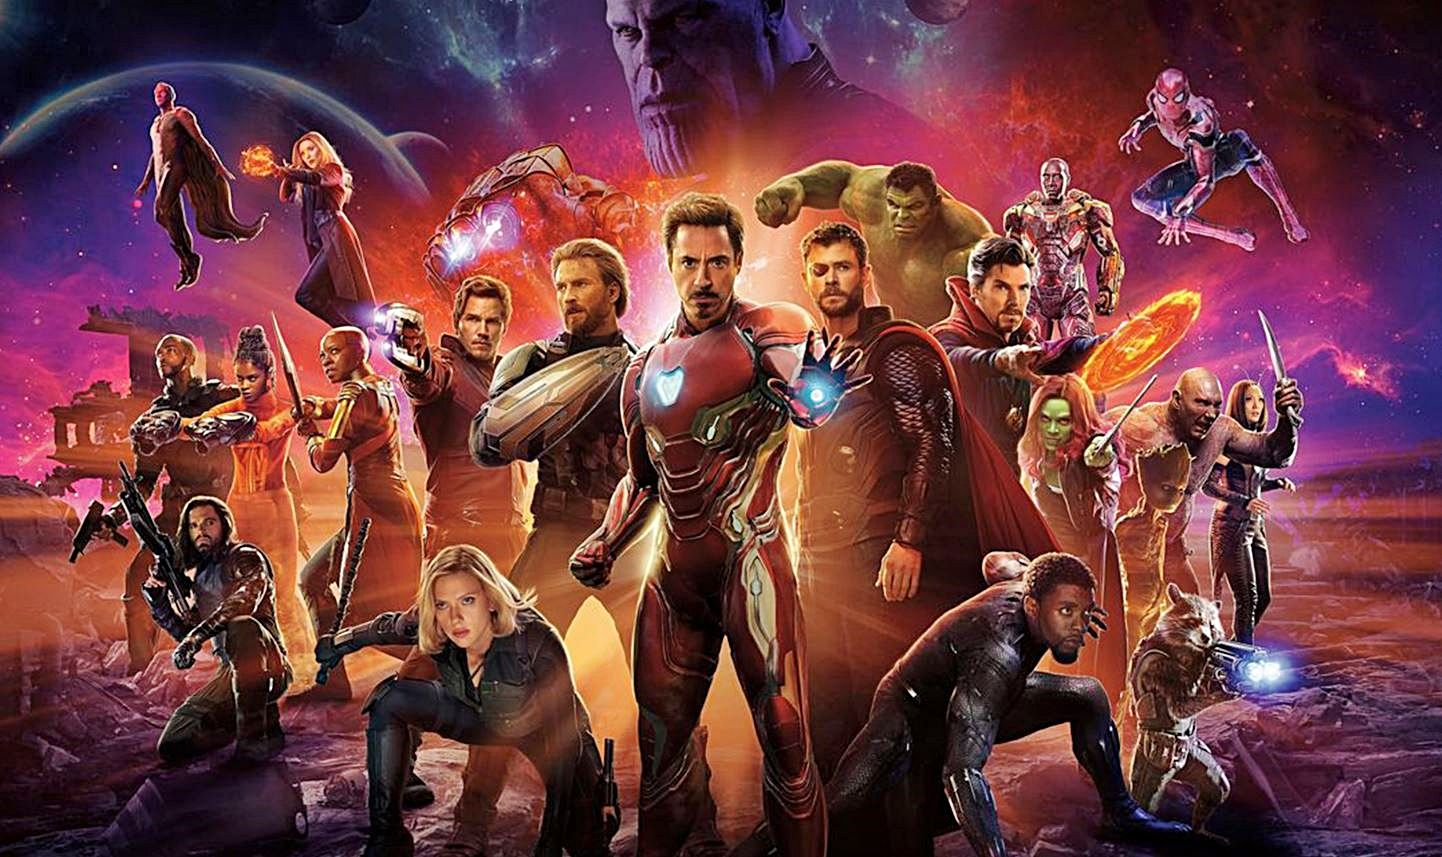 Mcu Star Confirms Their Character Died In Avengers Infinity War Marvel Cinematic Avengers Movies Marvel Movies